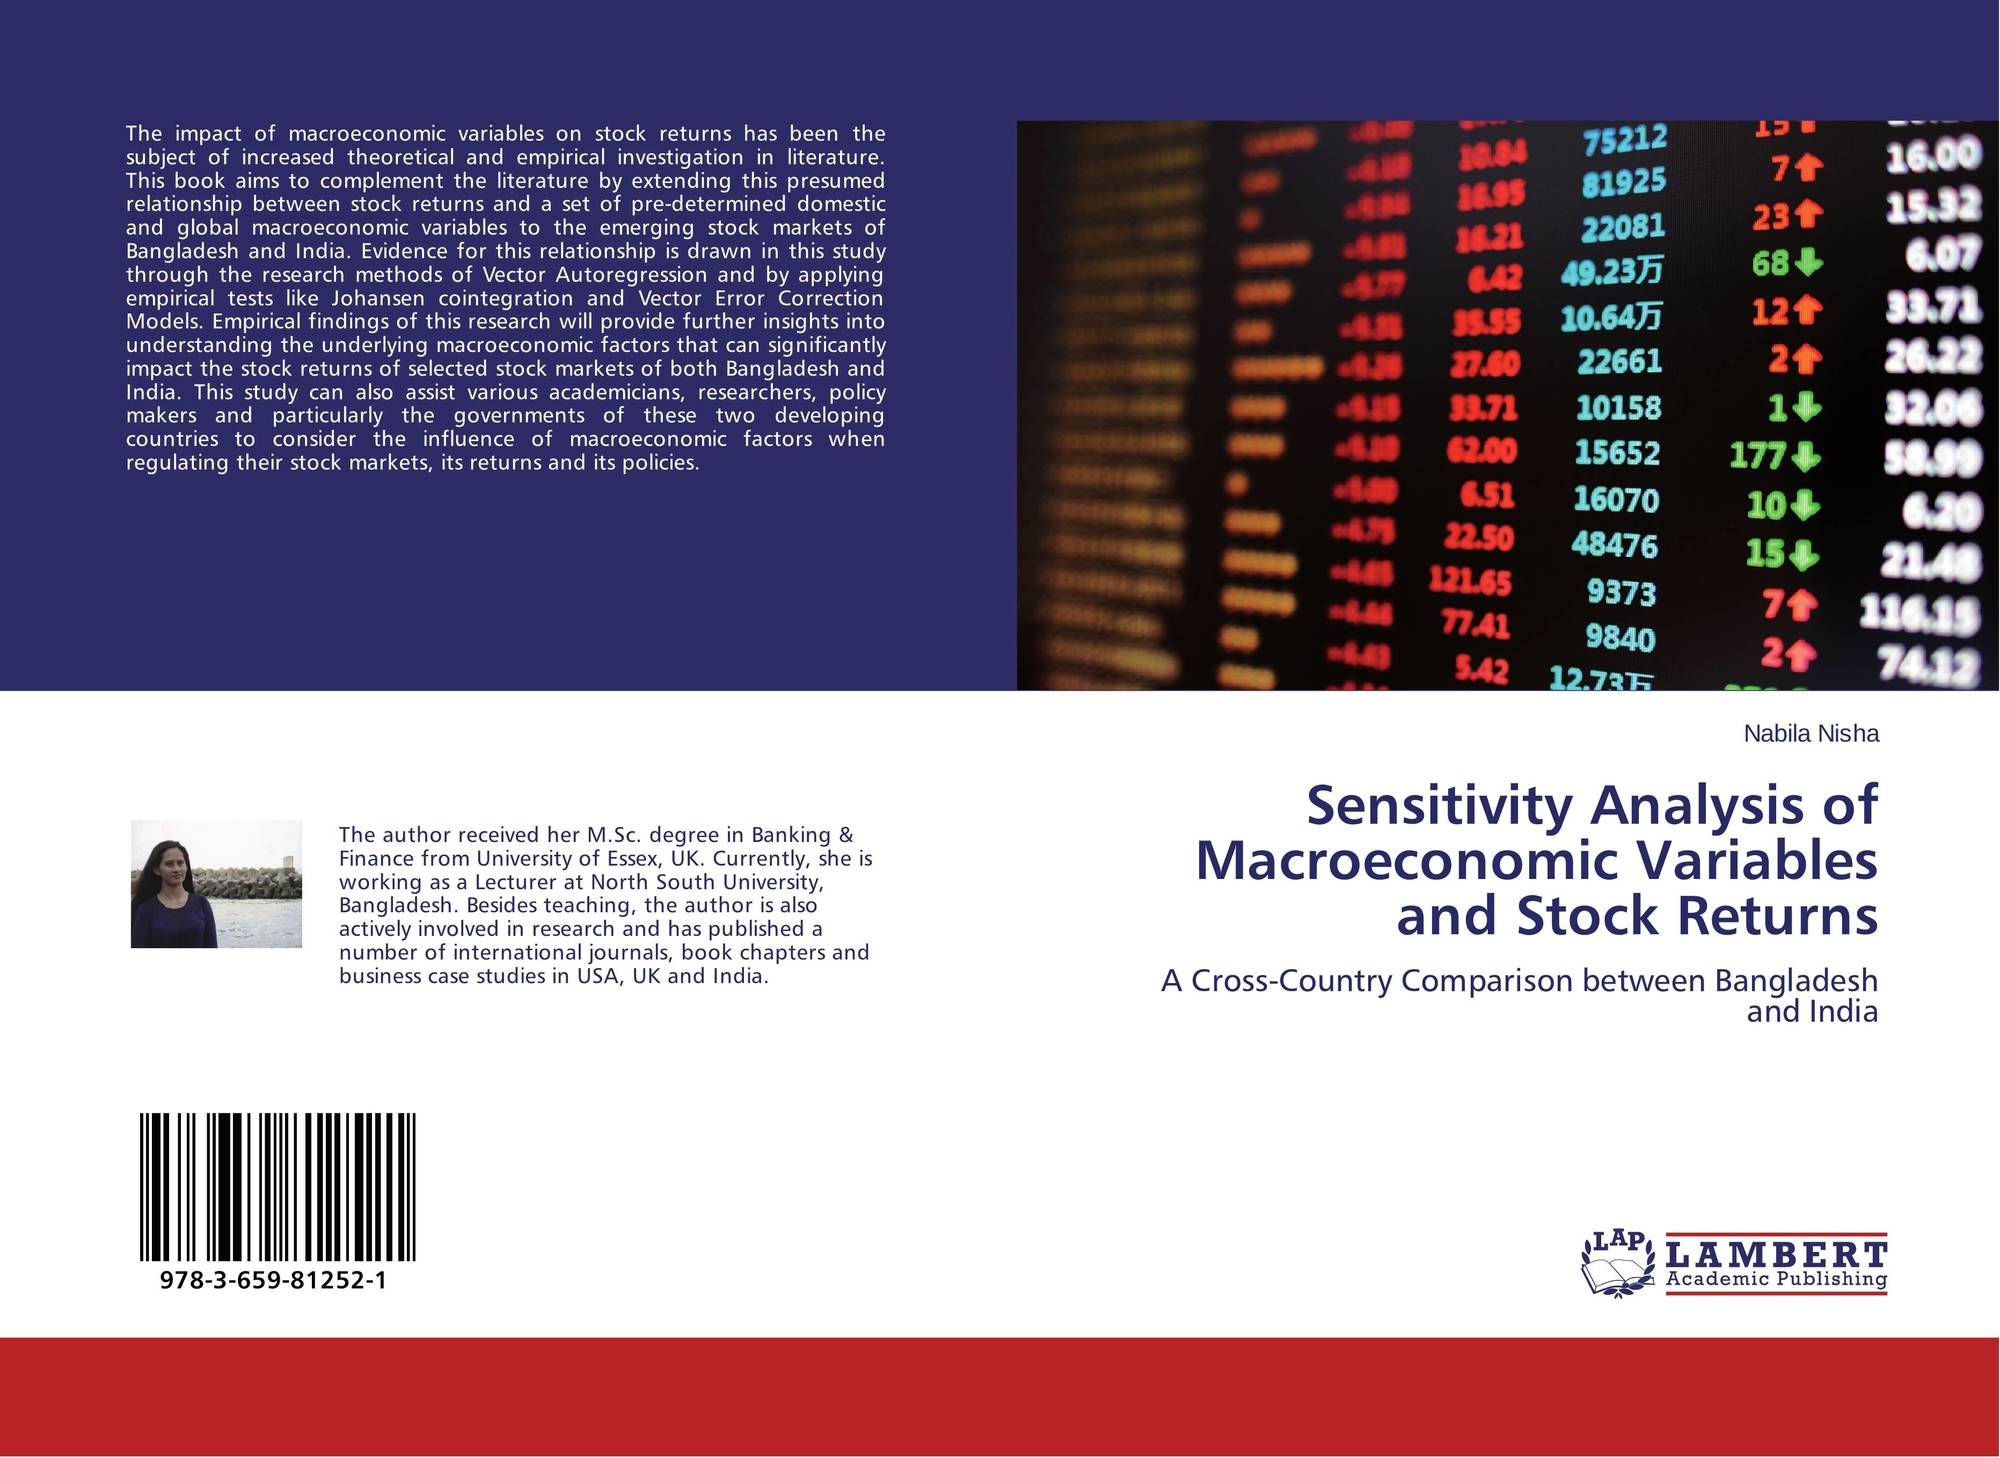 volatility of macroeconomic variables and stock returns Macroeconomic and financial variables by taking stock market return and gold prices in to account, for the year 1991 to 2009 they analyzed the causality relationship between variables and found that gold and stock.